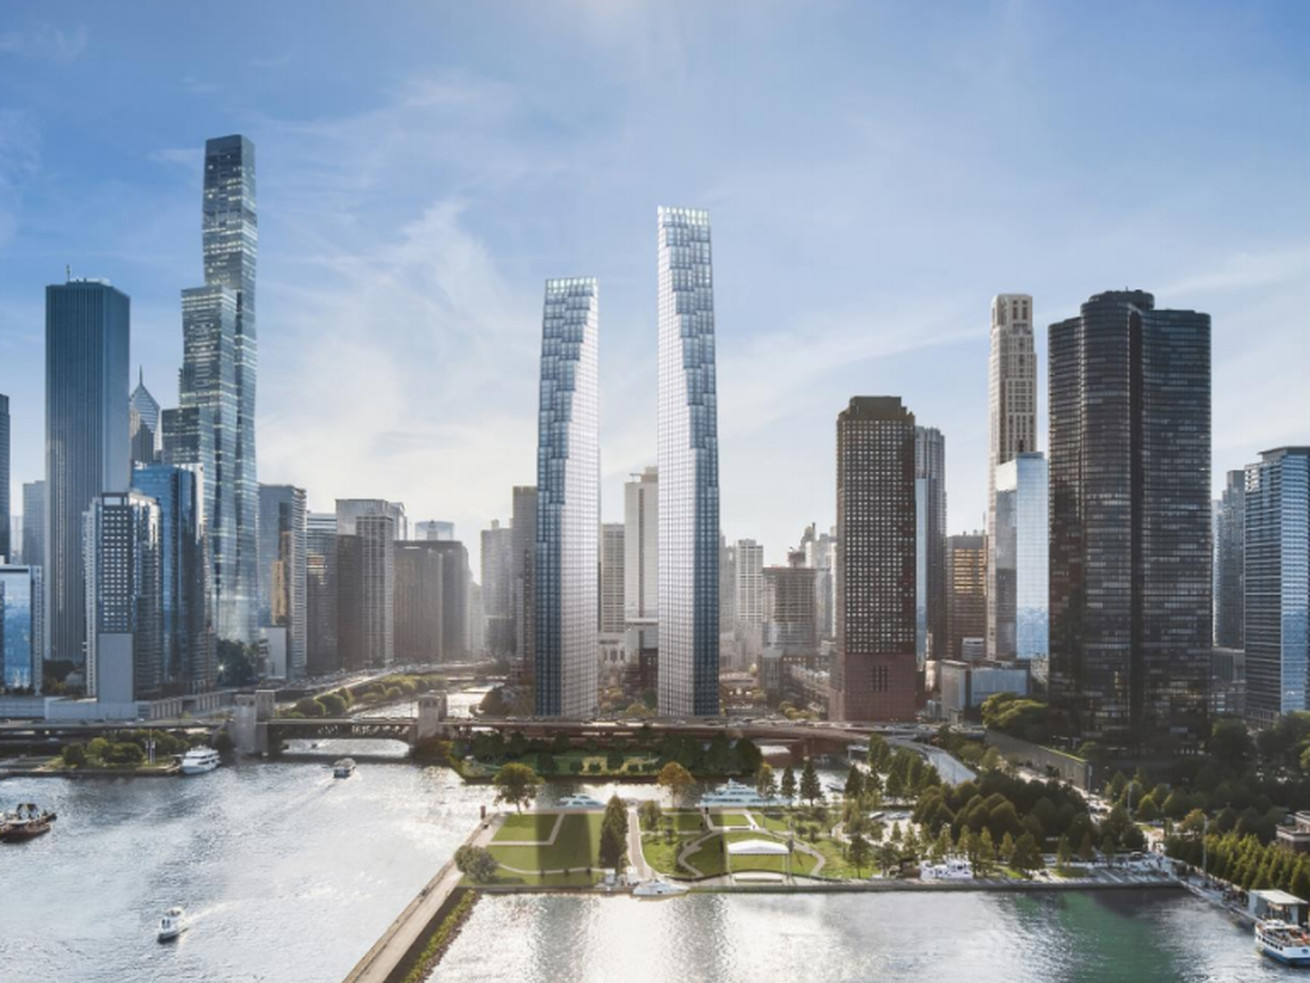 A rendering of the residential towers that would arise from 400 N. Lake Shore Drive.